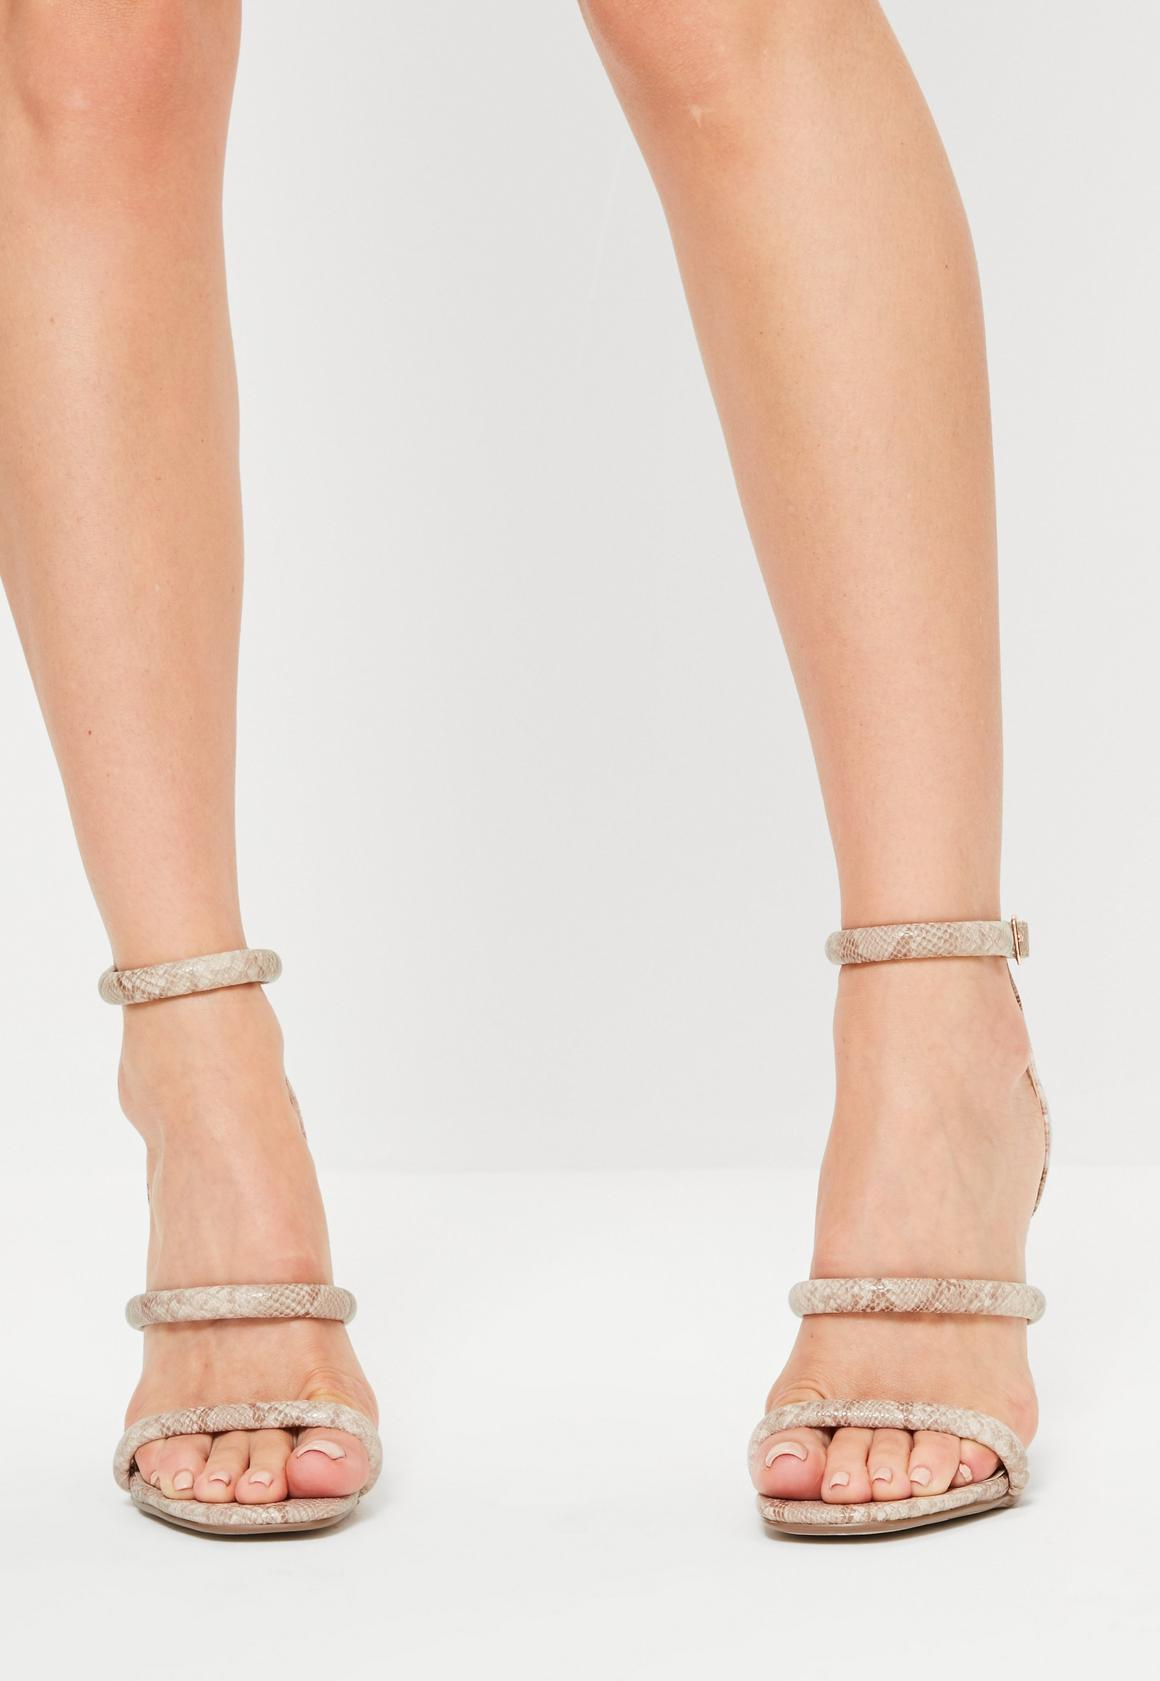 eadd83e0e872 Missguided - Nude Snake Print 3 Strap Barely There Heels